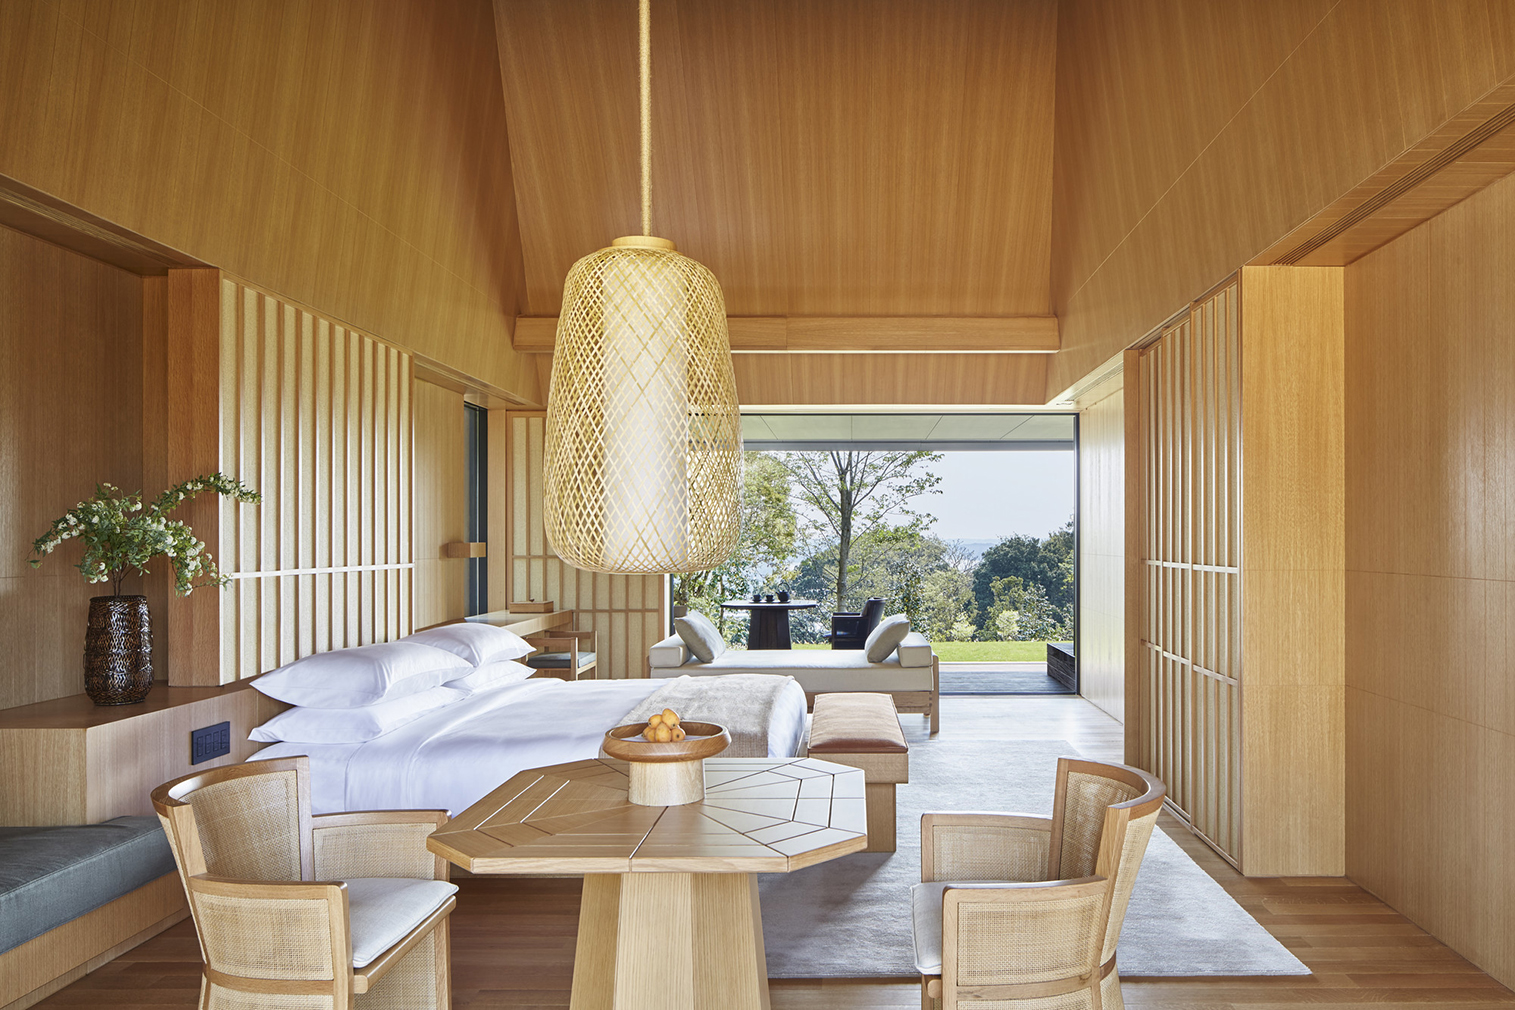 Amanemu is a contemporary take on traditional japanese hot for Spring hill designs bedroom furniture